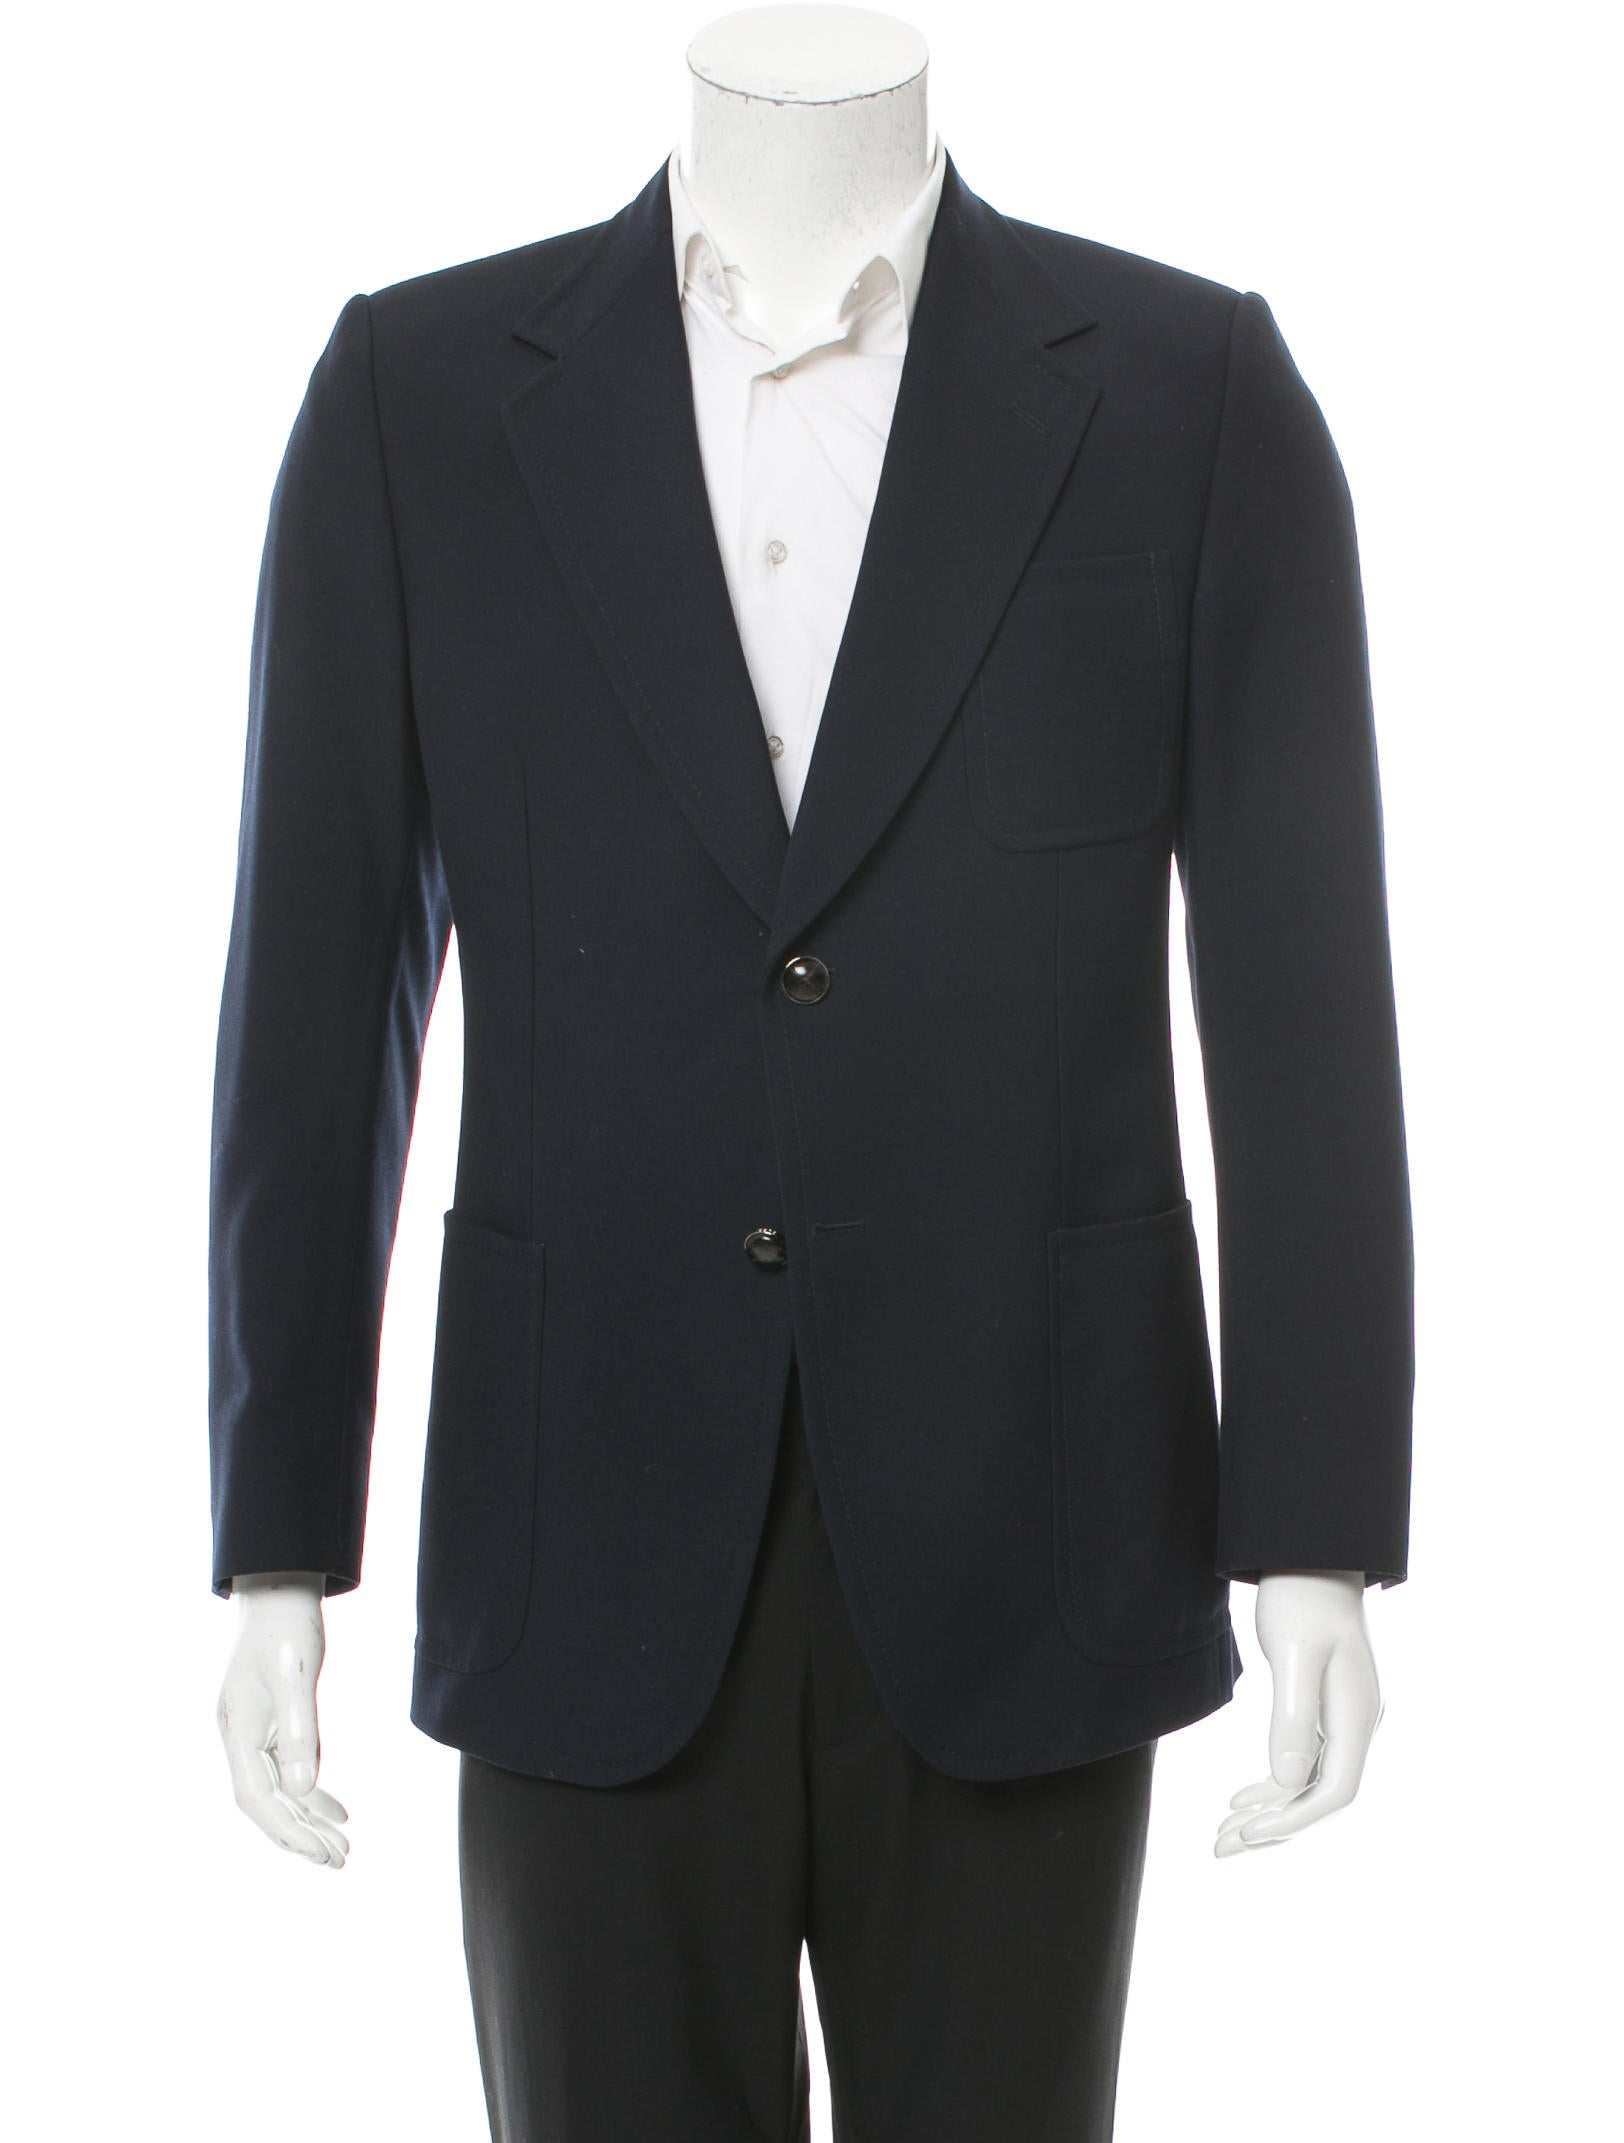 Gucci Silk-Lined Sport Coat - Clothing - GUC172519 | The RealReal